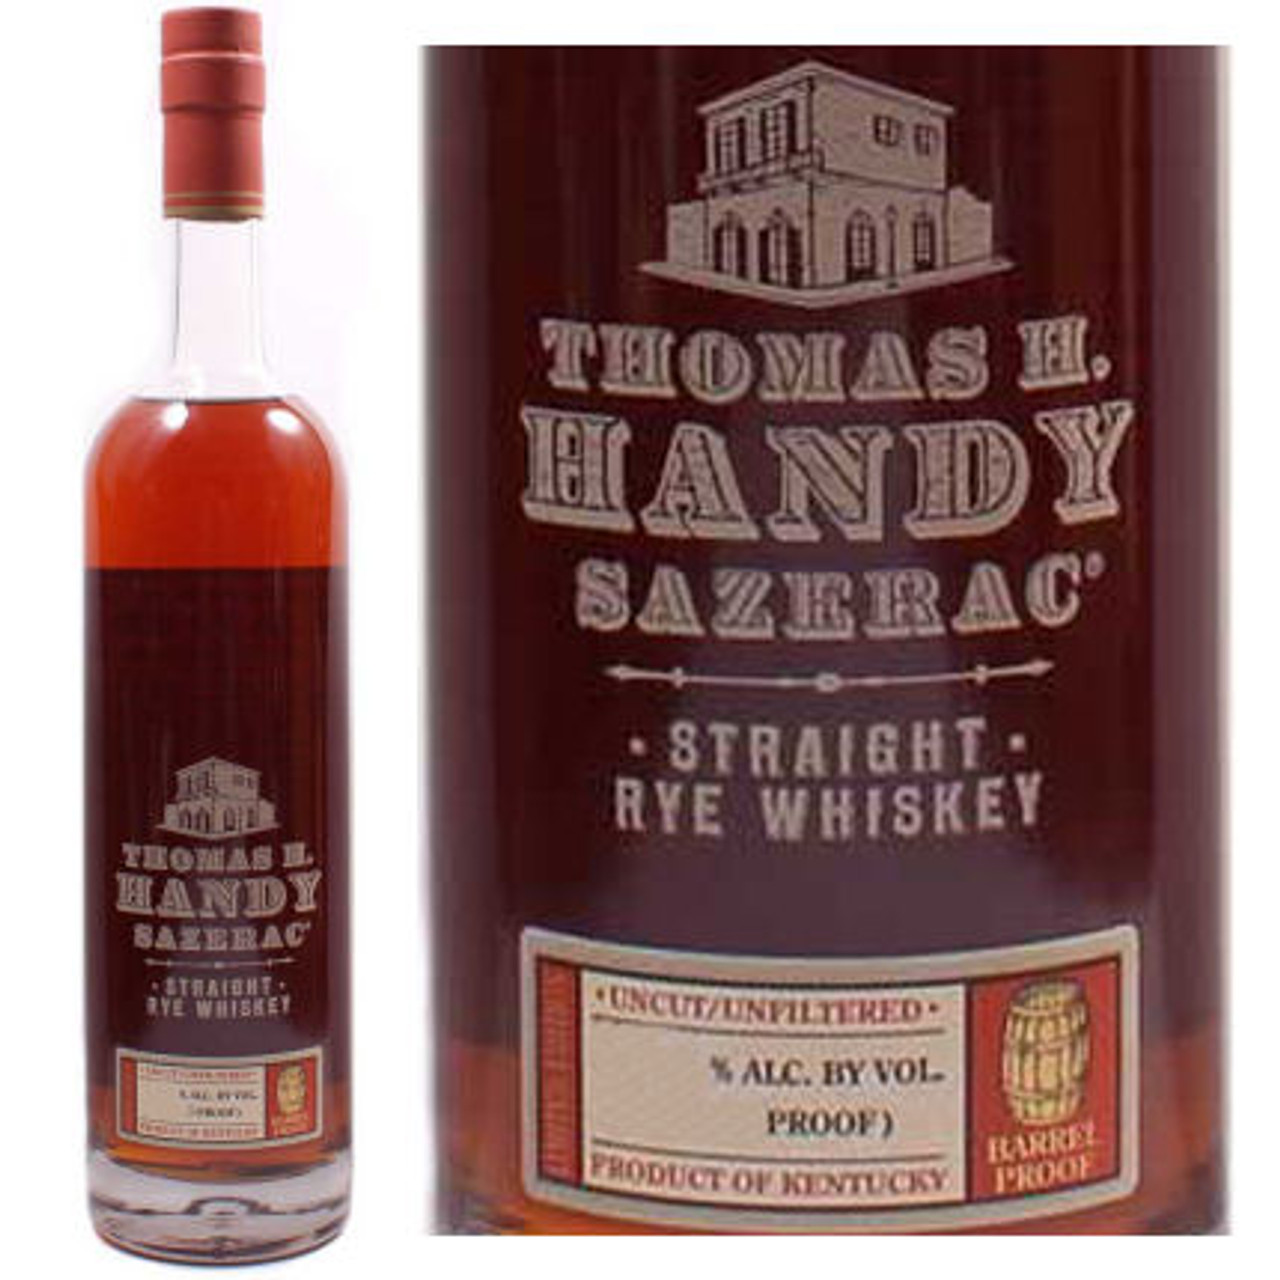 Thomas H. Handy Sazerac Rye Whiskey 750ml